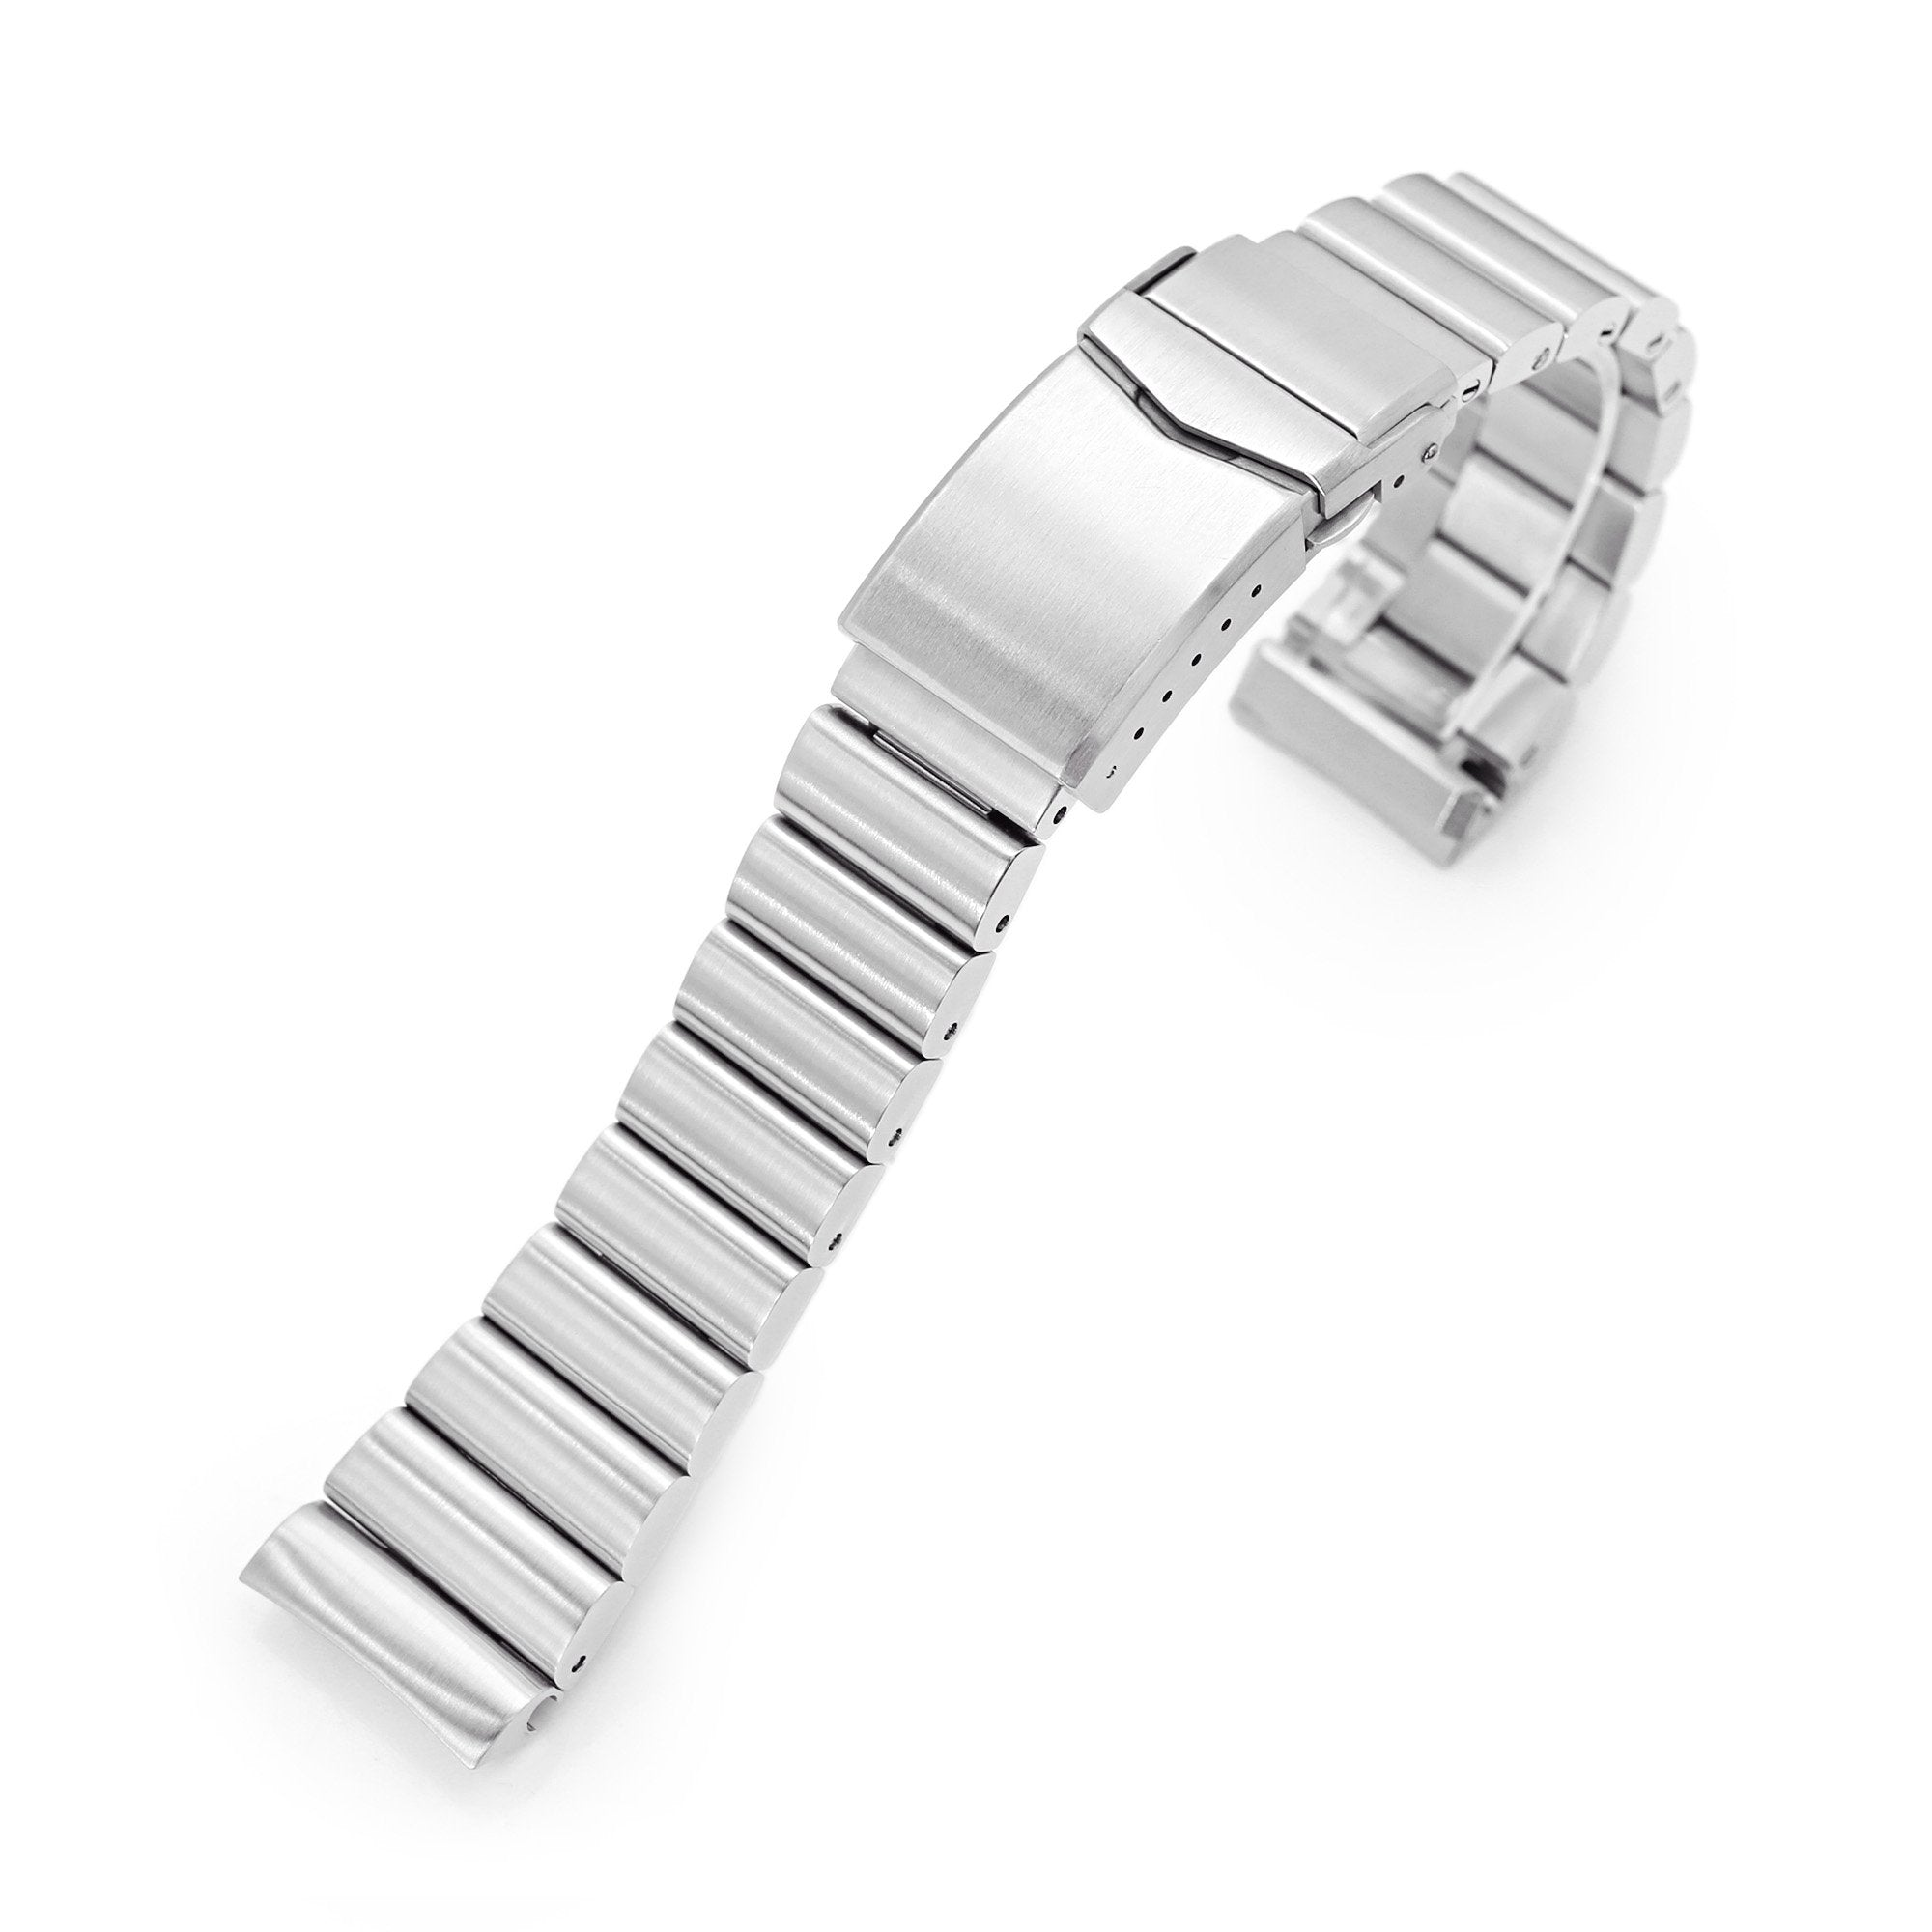 22mm Bandoleer 316L Stainless Steel Watch Bracelet for Seiko new Turtles SRP777 Brushed V-Clasp Strapcode Watch Bands